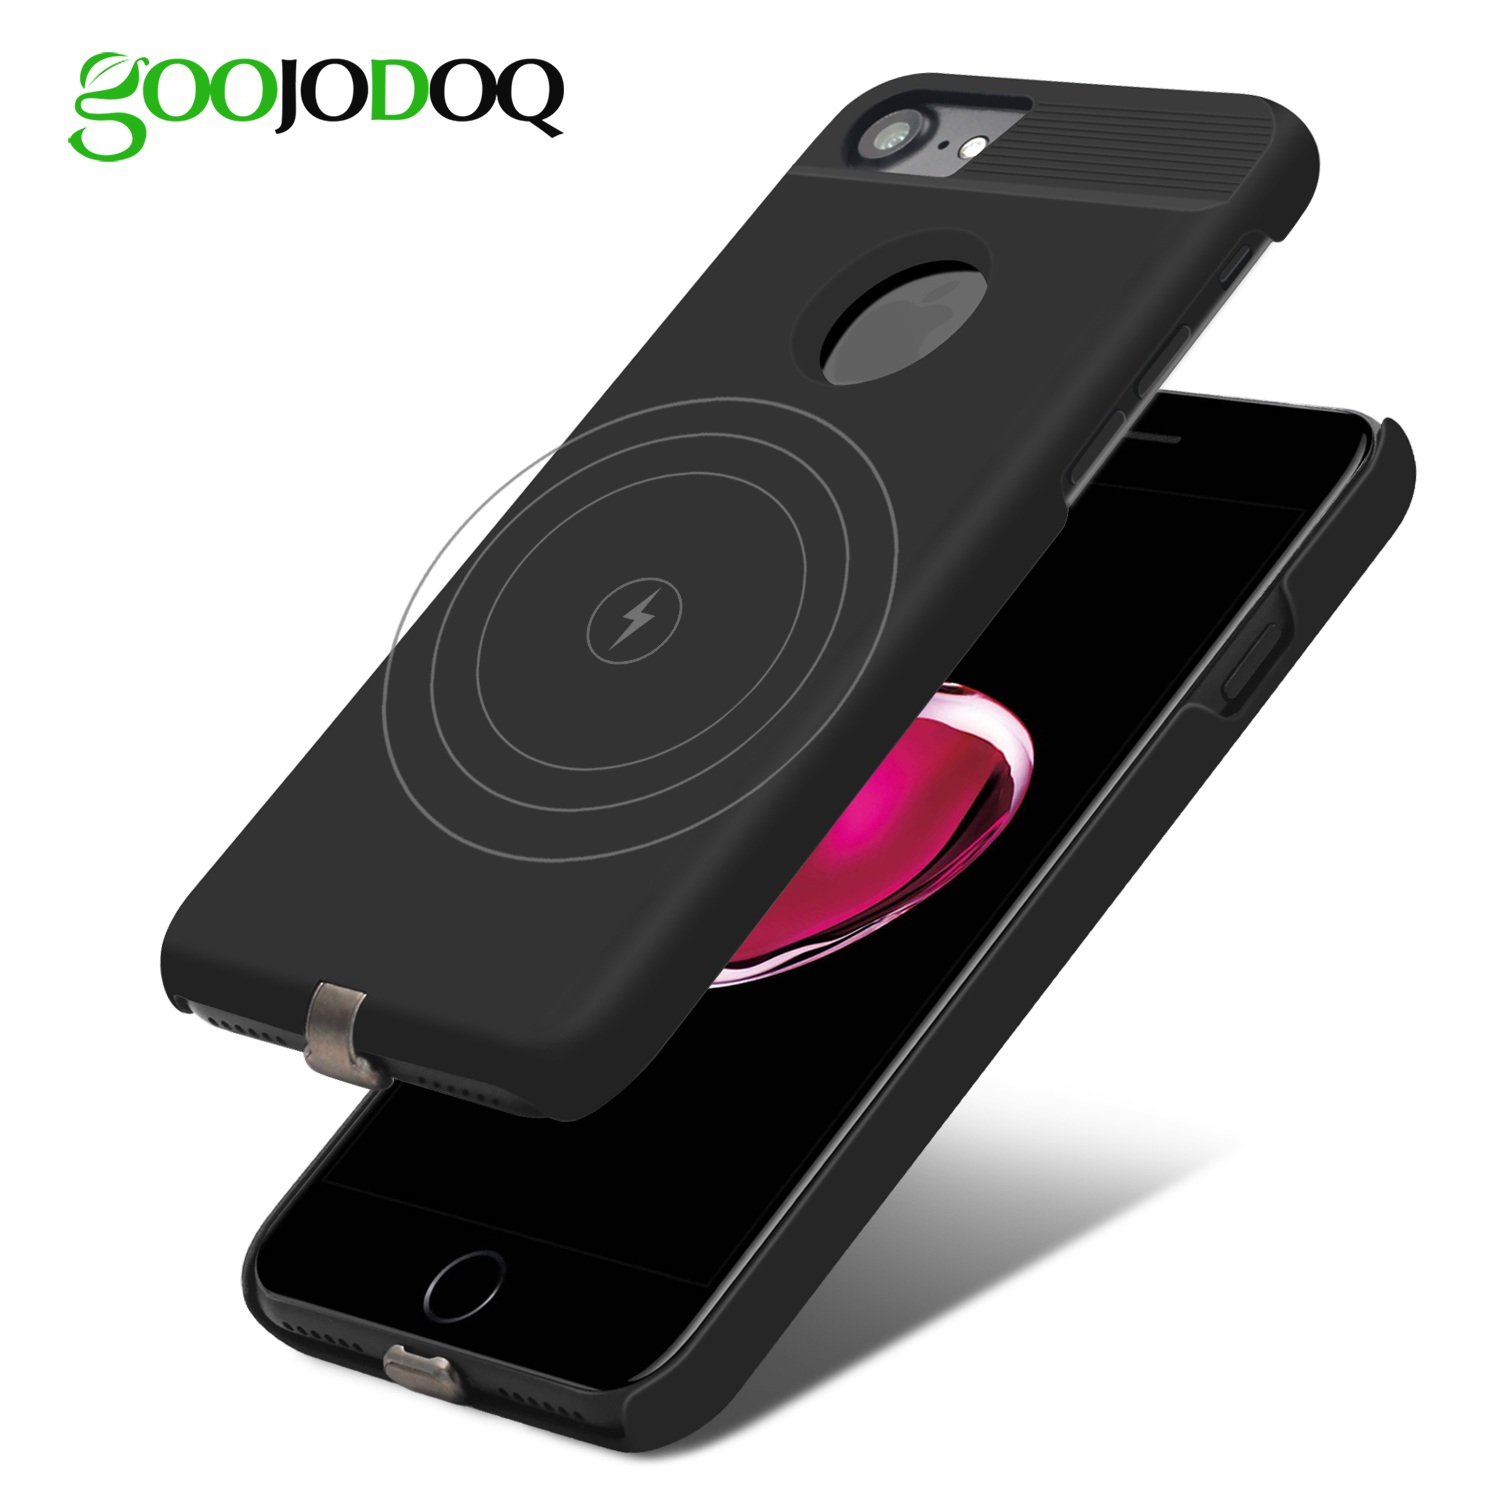 huge discount 9ed37 4a78c Qi Wireless Charger Receiver Case For iPhone 7 6 6s Mobile Phone Case  Wireless Charging Pad Dock Cover For iPhone 7 Plus 6 6s 8